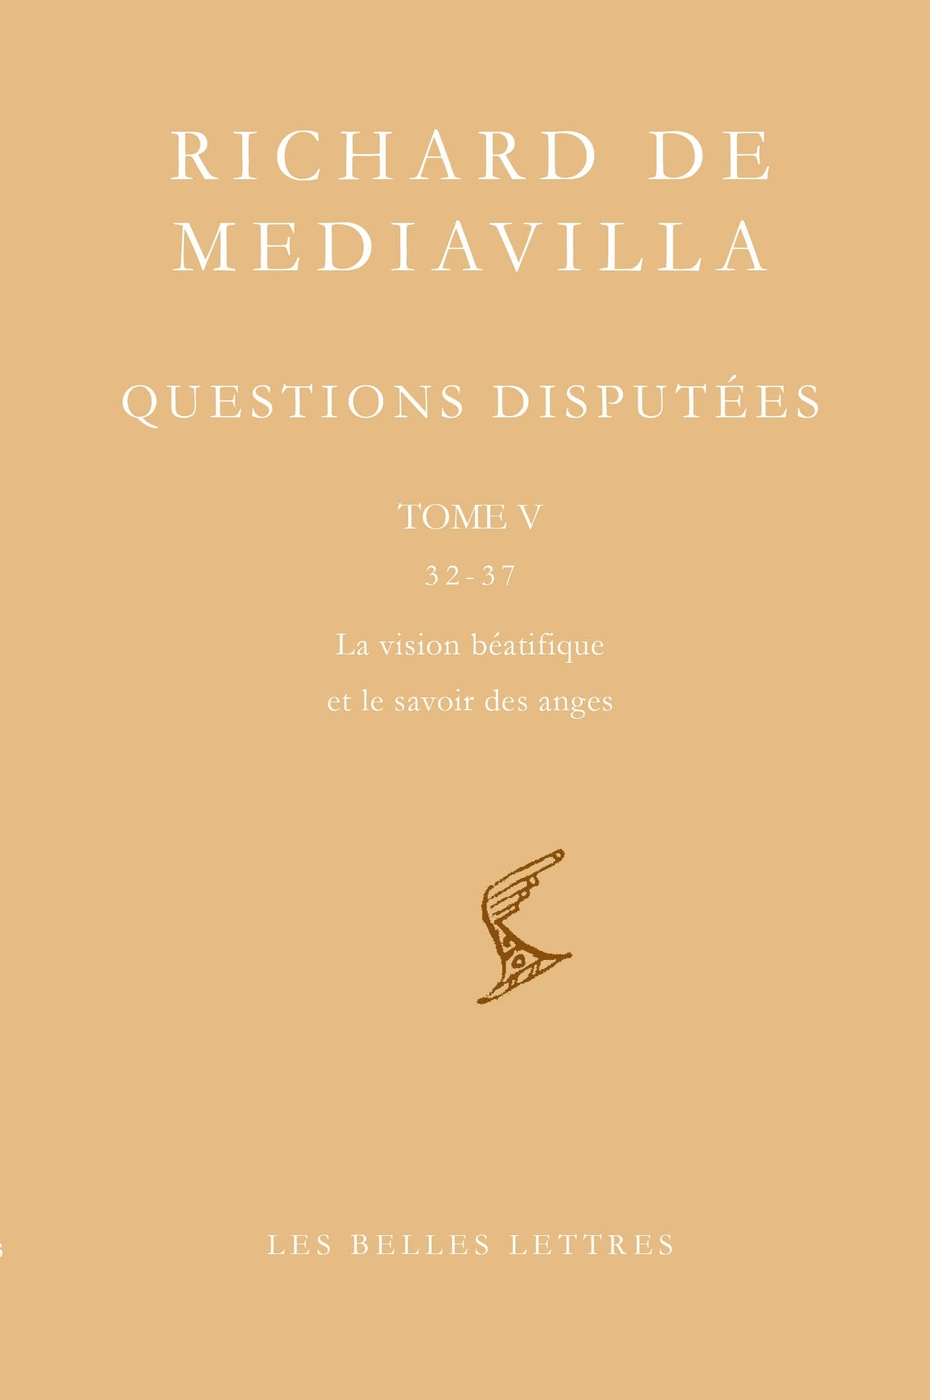 Questions disputées. Tome V